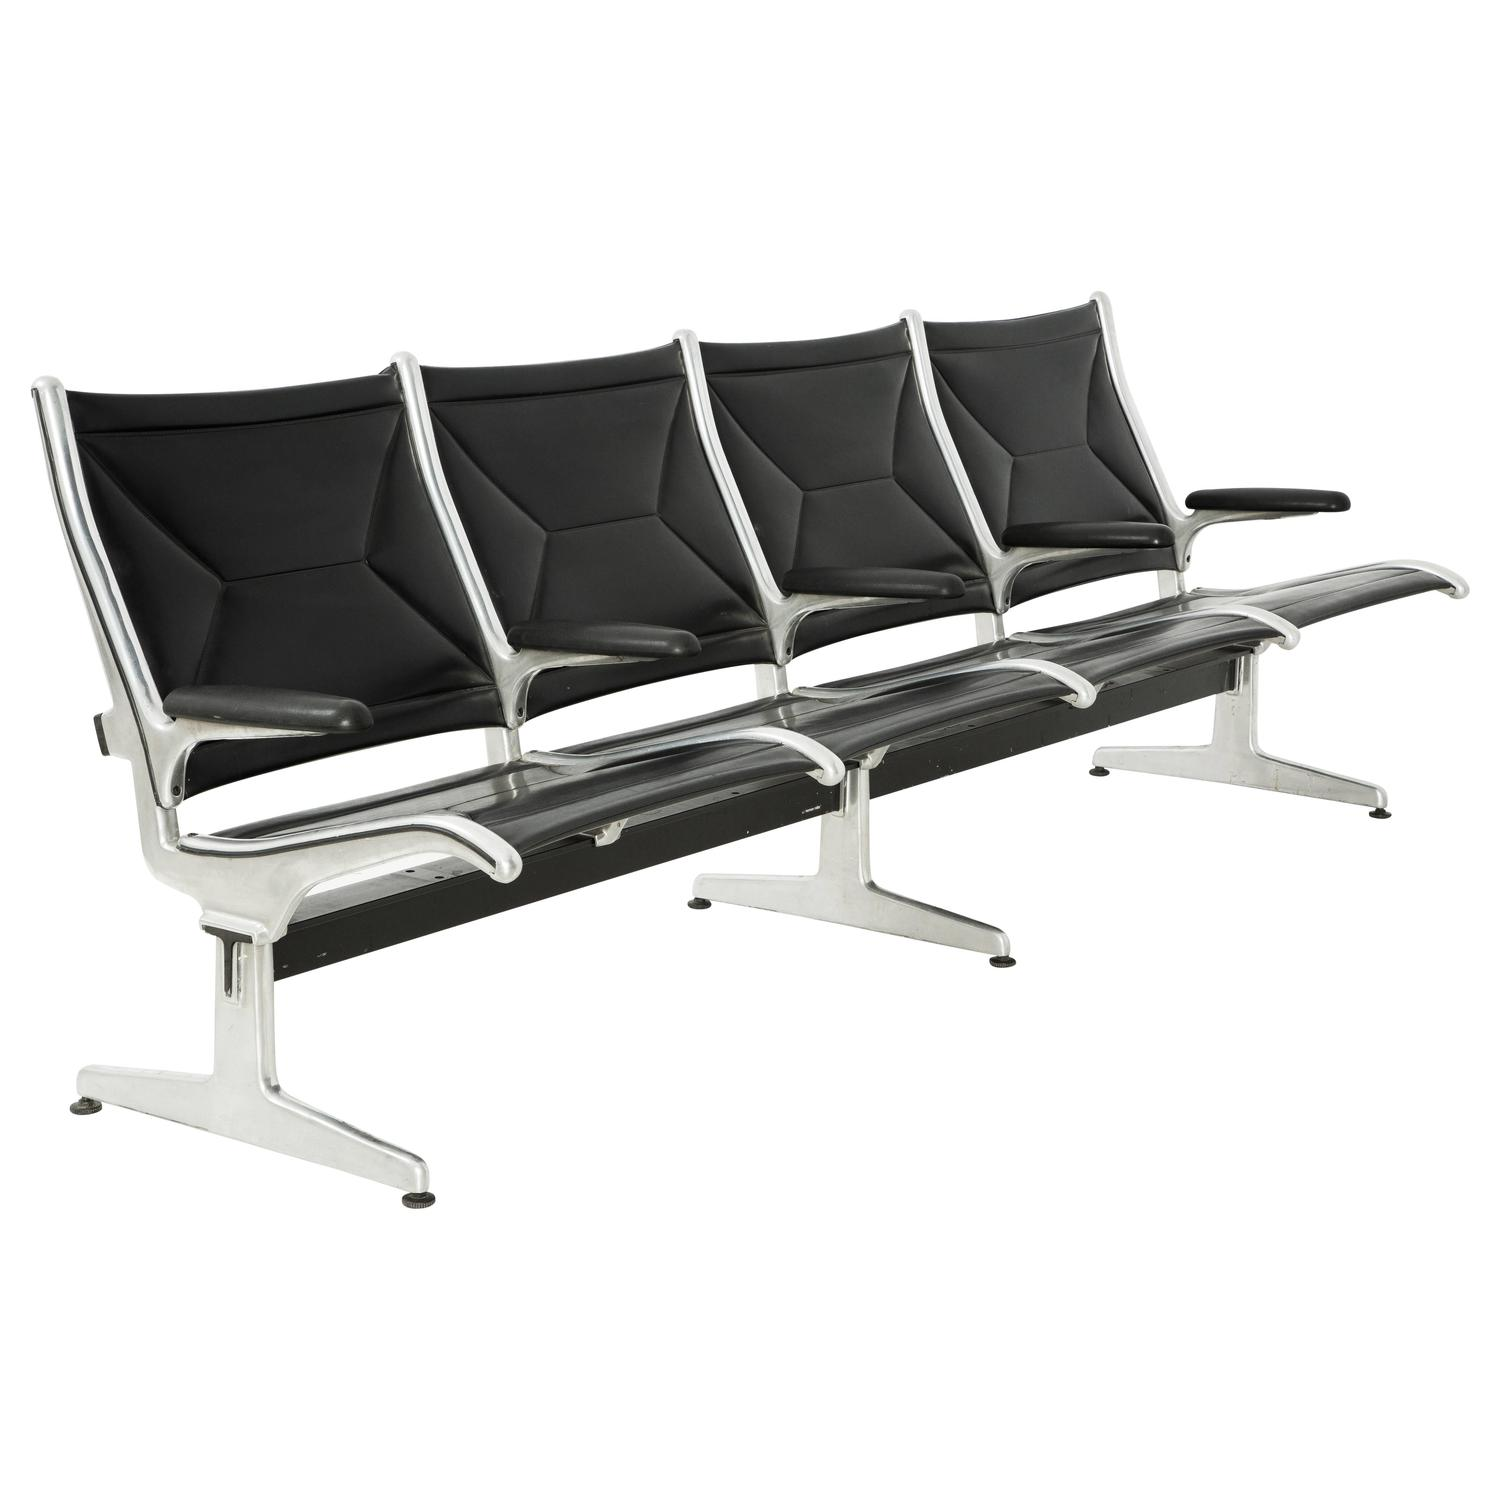 Tandem Sling by Ray and Charles Eames for Herman Miller Four Seat